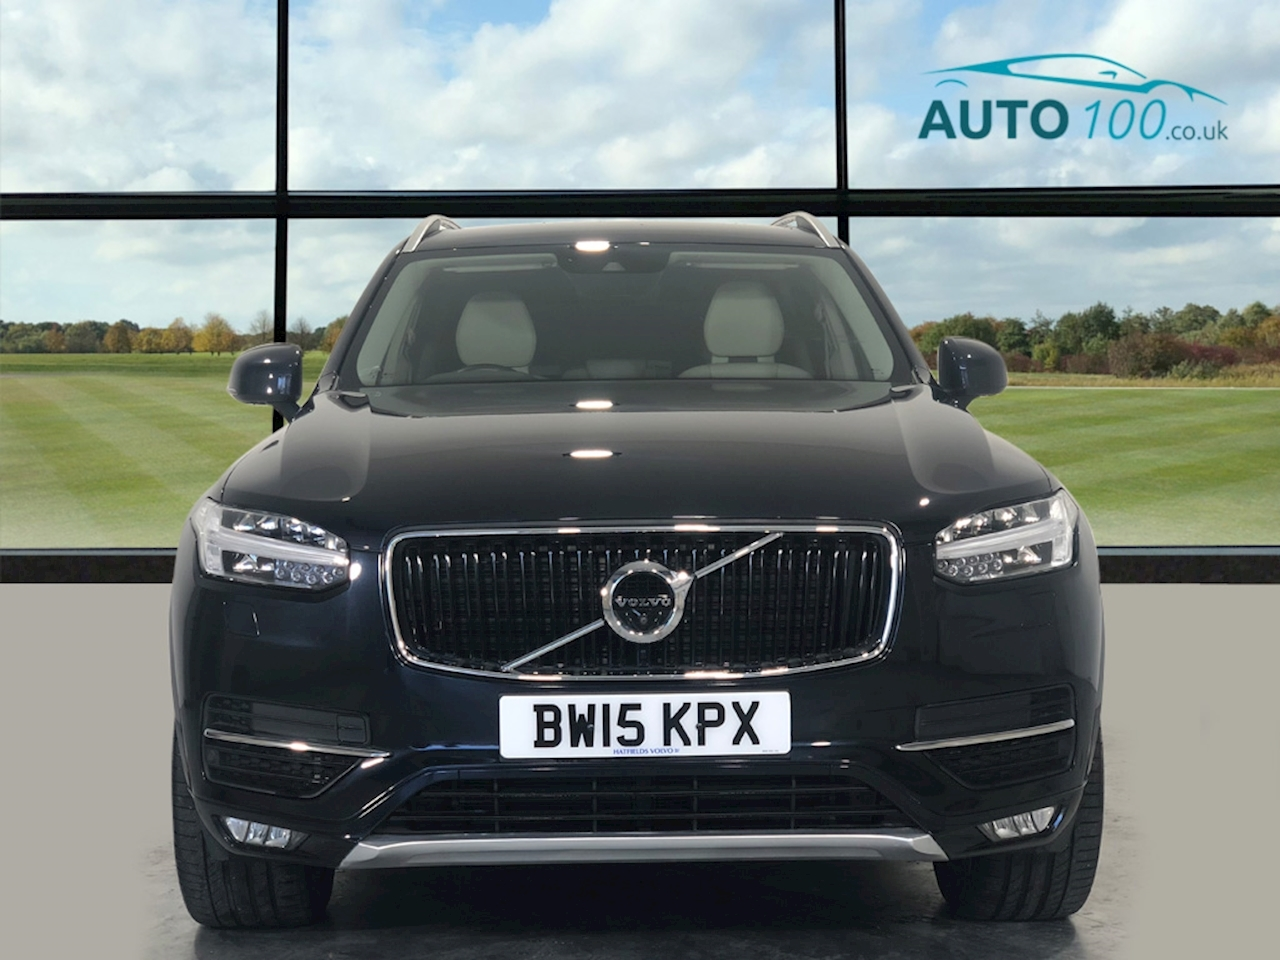 Volvo Xc90 T6 Momentum Awd Estate 2.0 Automatic Petrol